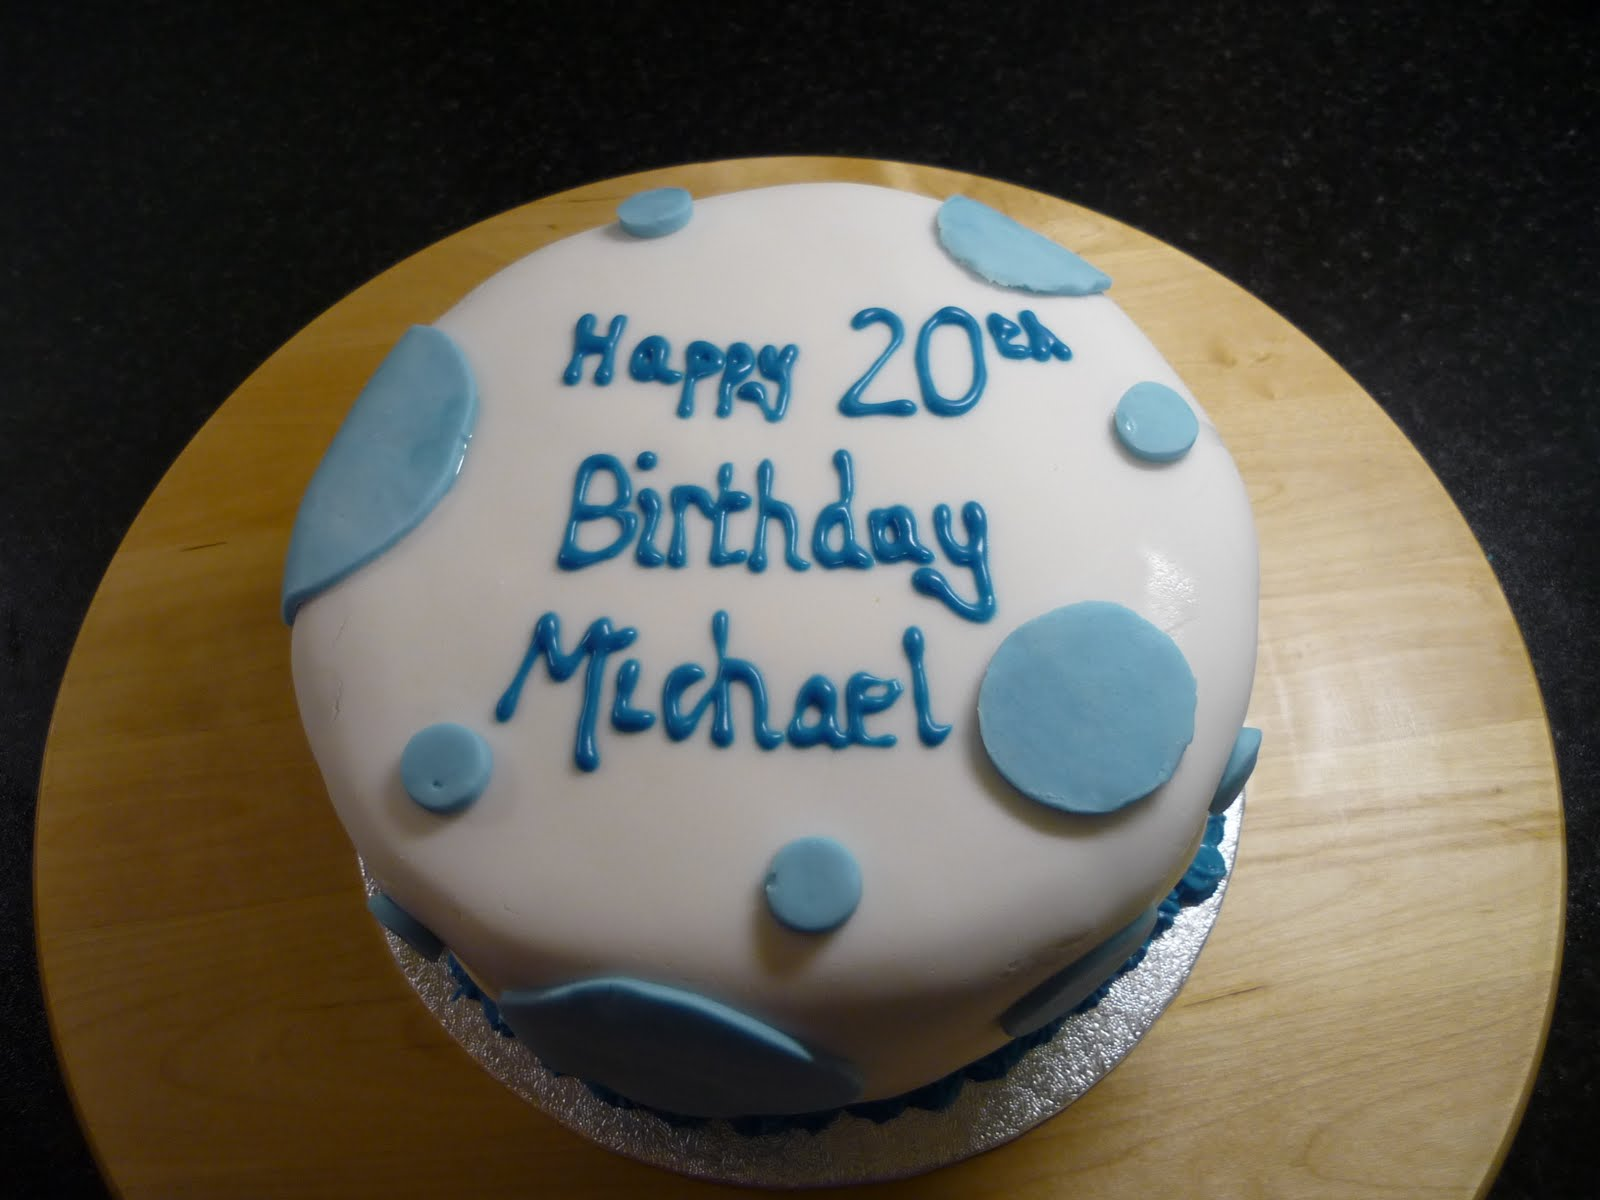 Birthday Cake Images Michael : The Bakehouse: Michael s Birthday cake...